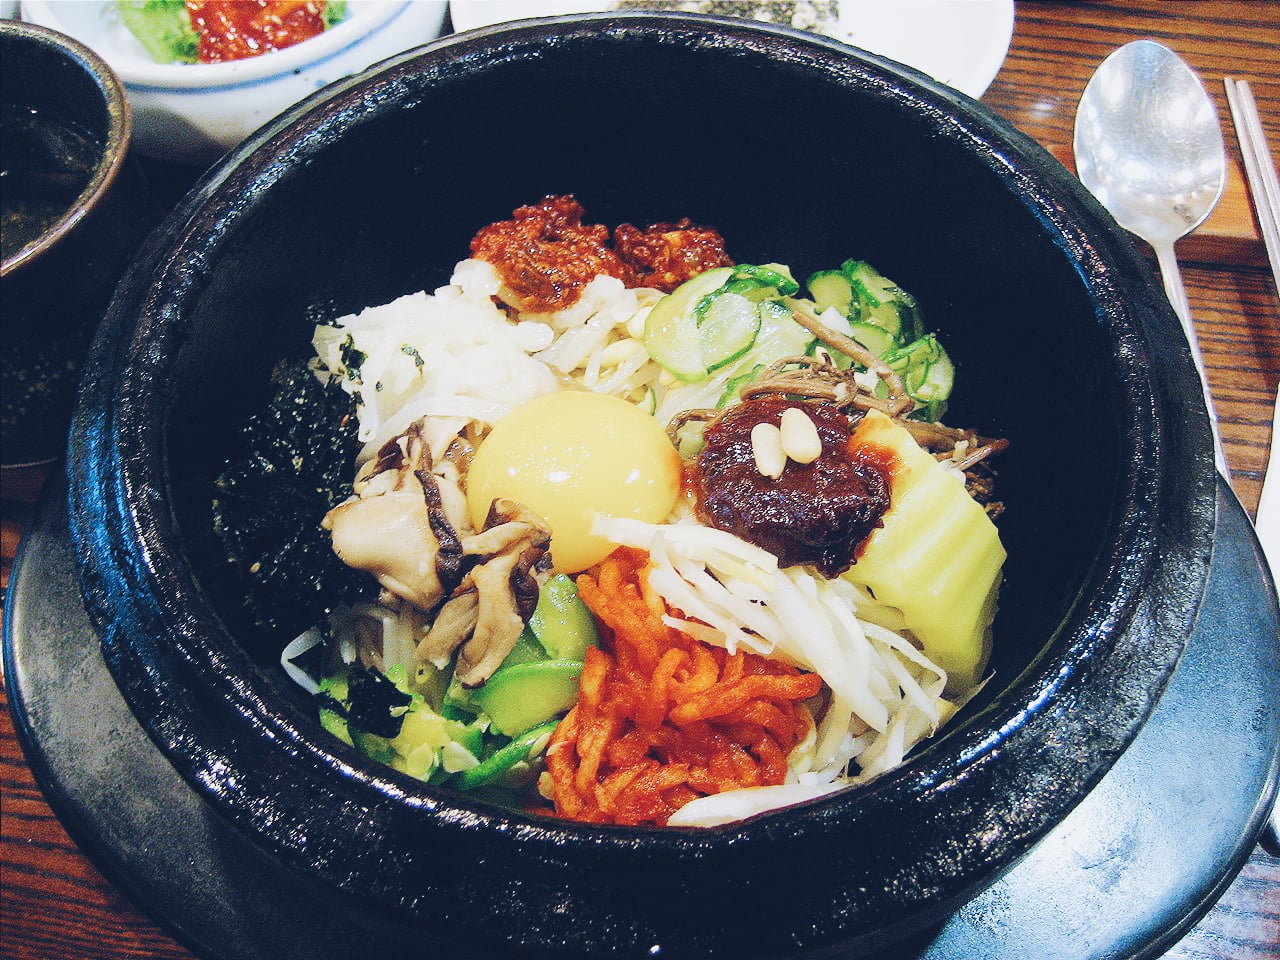 A South Korea popular dish, Bibimbap is a mix of vegetables, egg, some meat, and is a common staple in a South Korean dinner table.